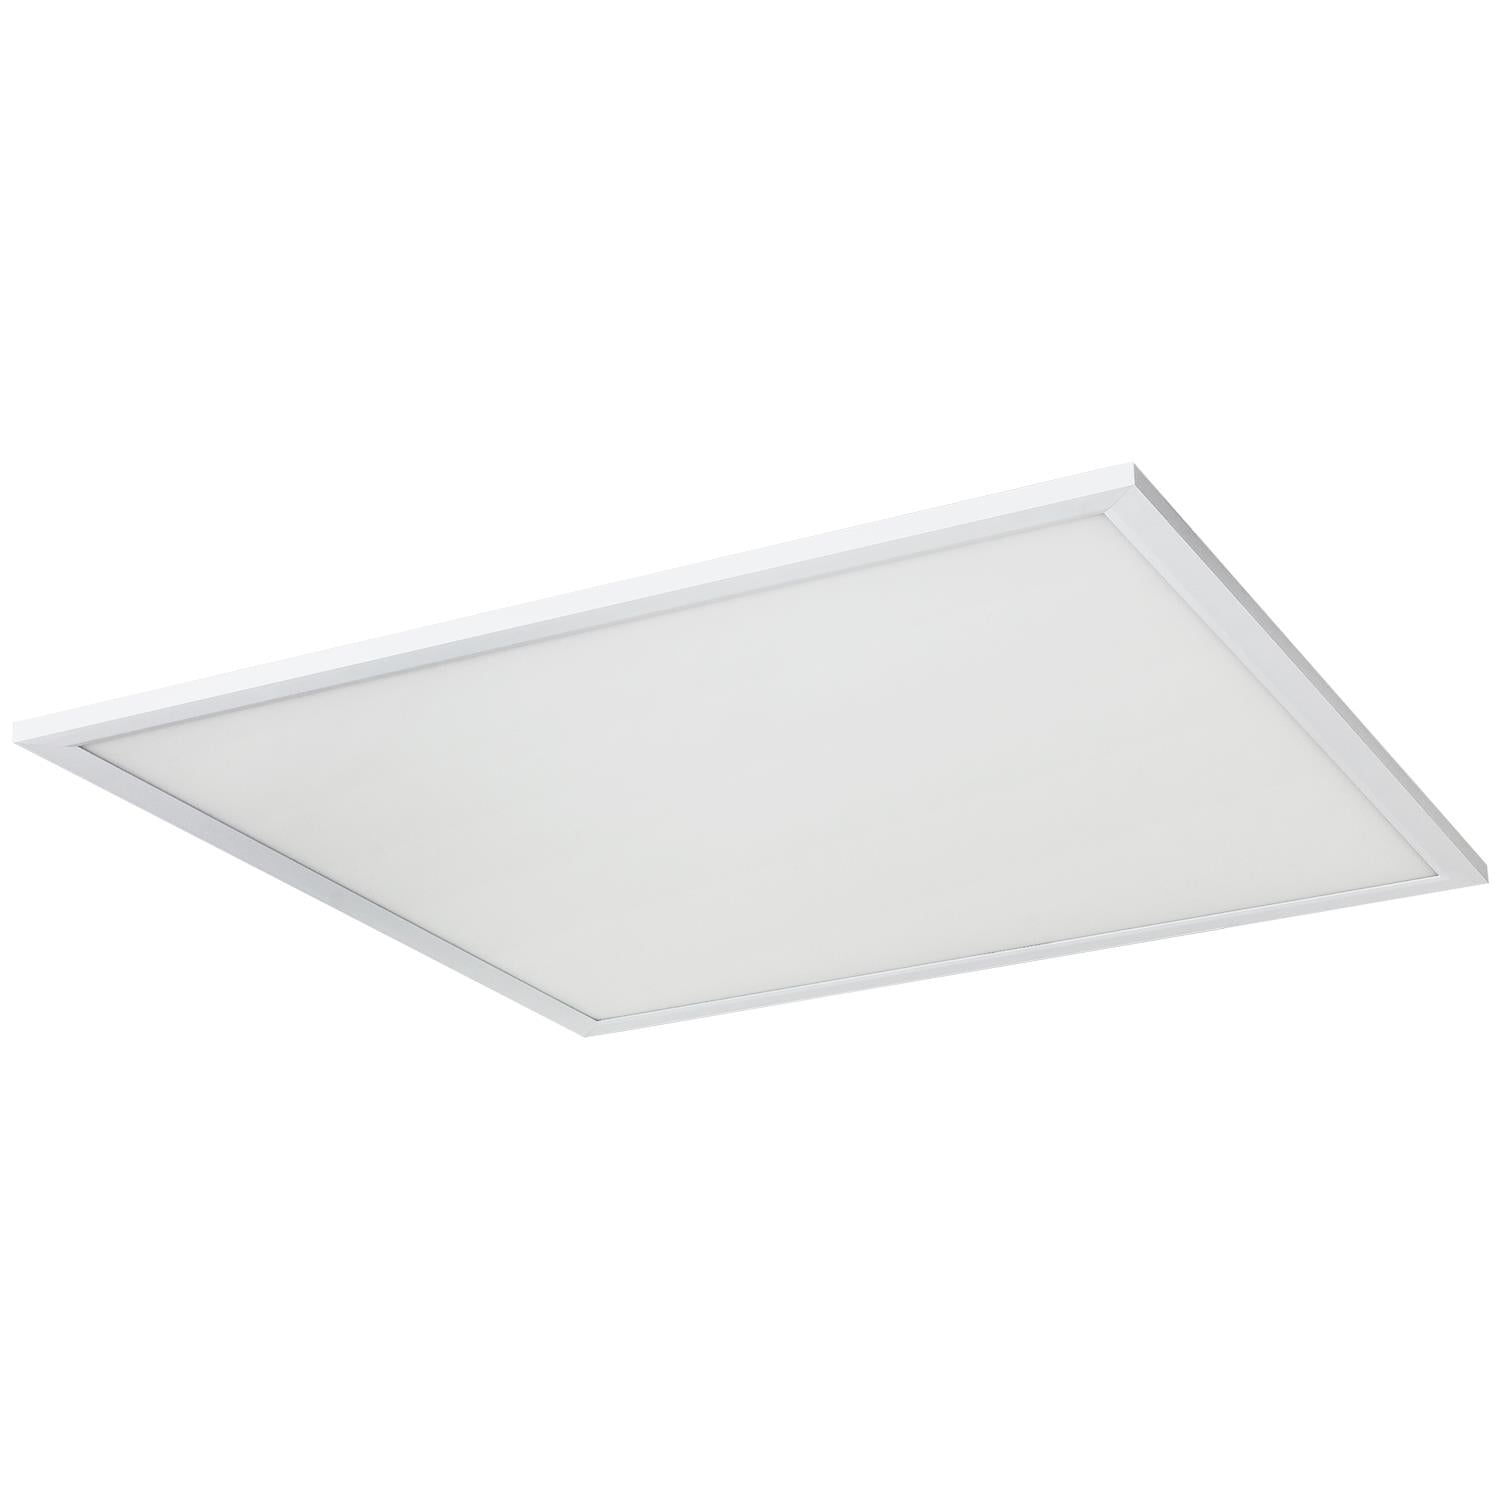 SUNLITE 85195-SU 40w 100-277v (2X2) LED Light Fixture Flat Panel - 6500K